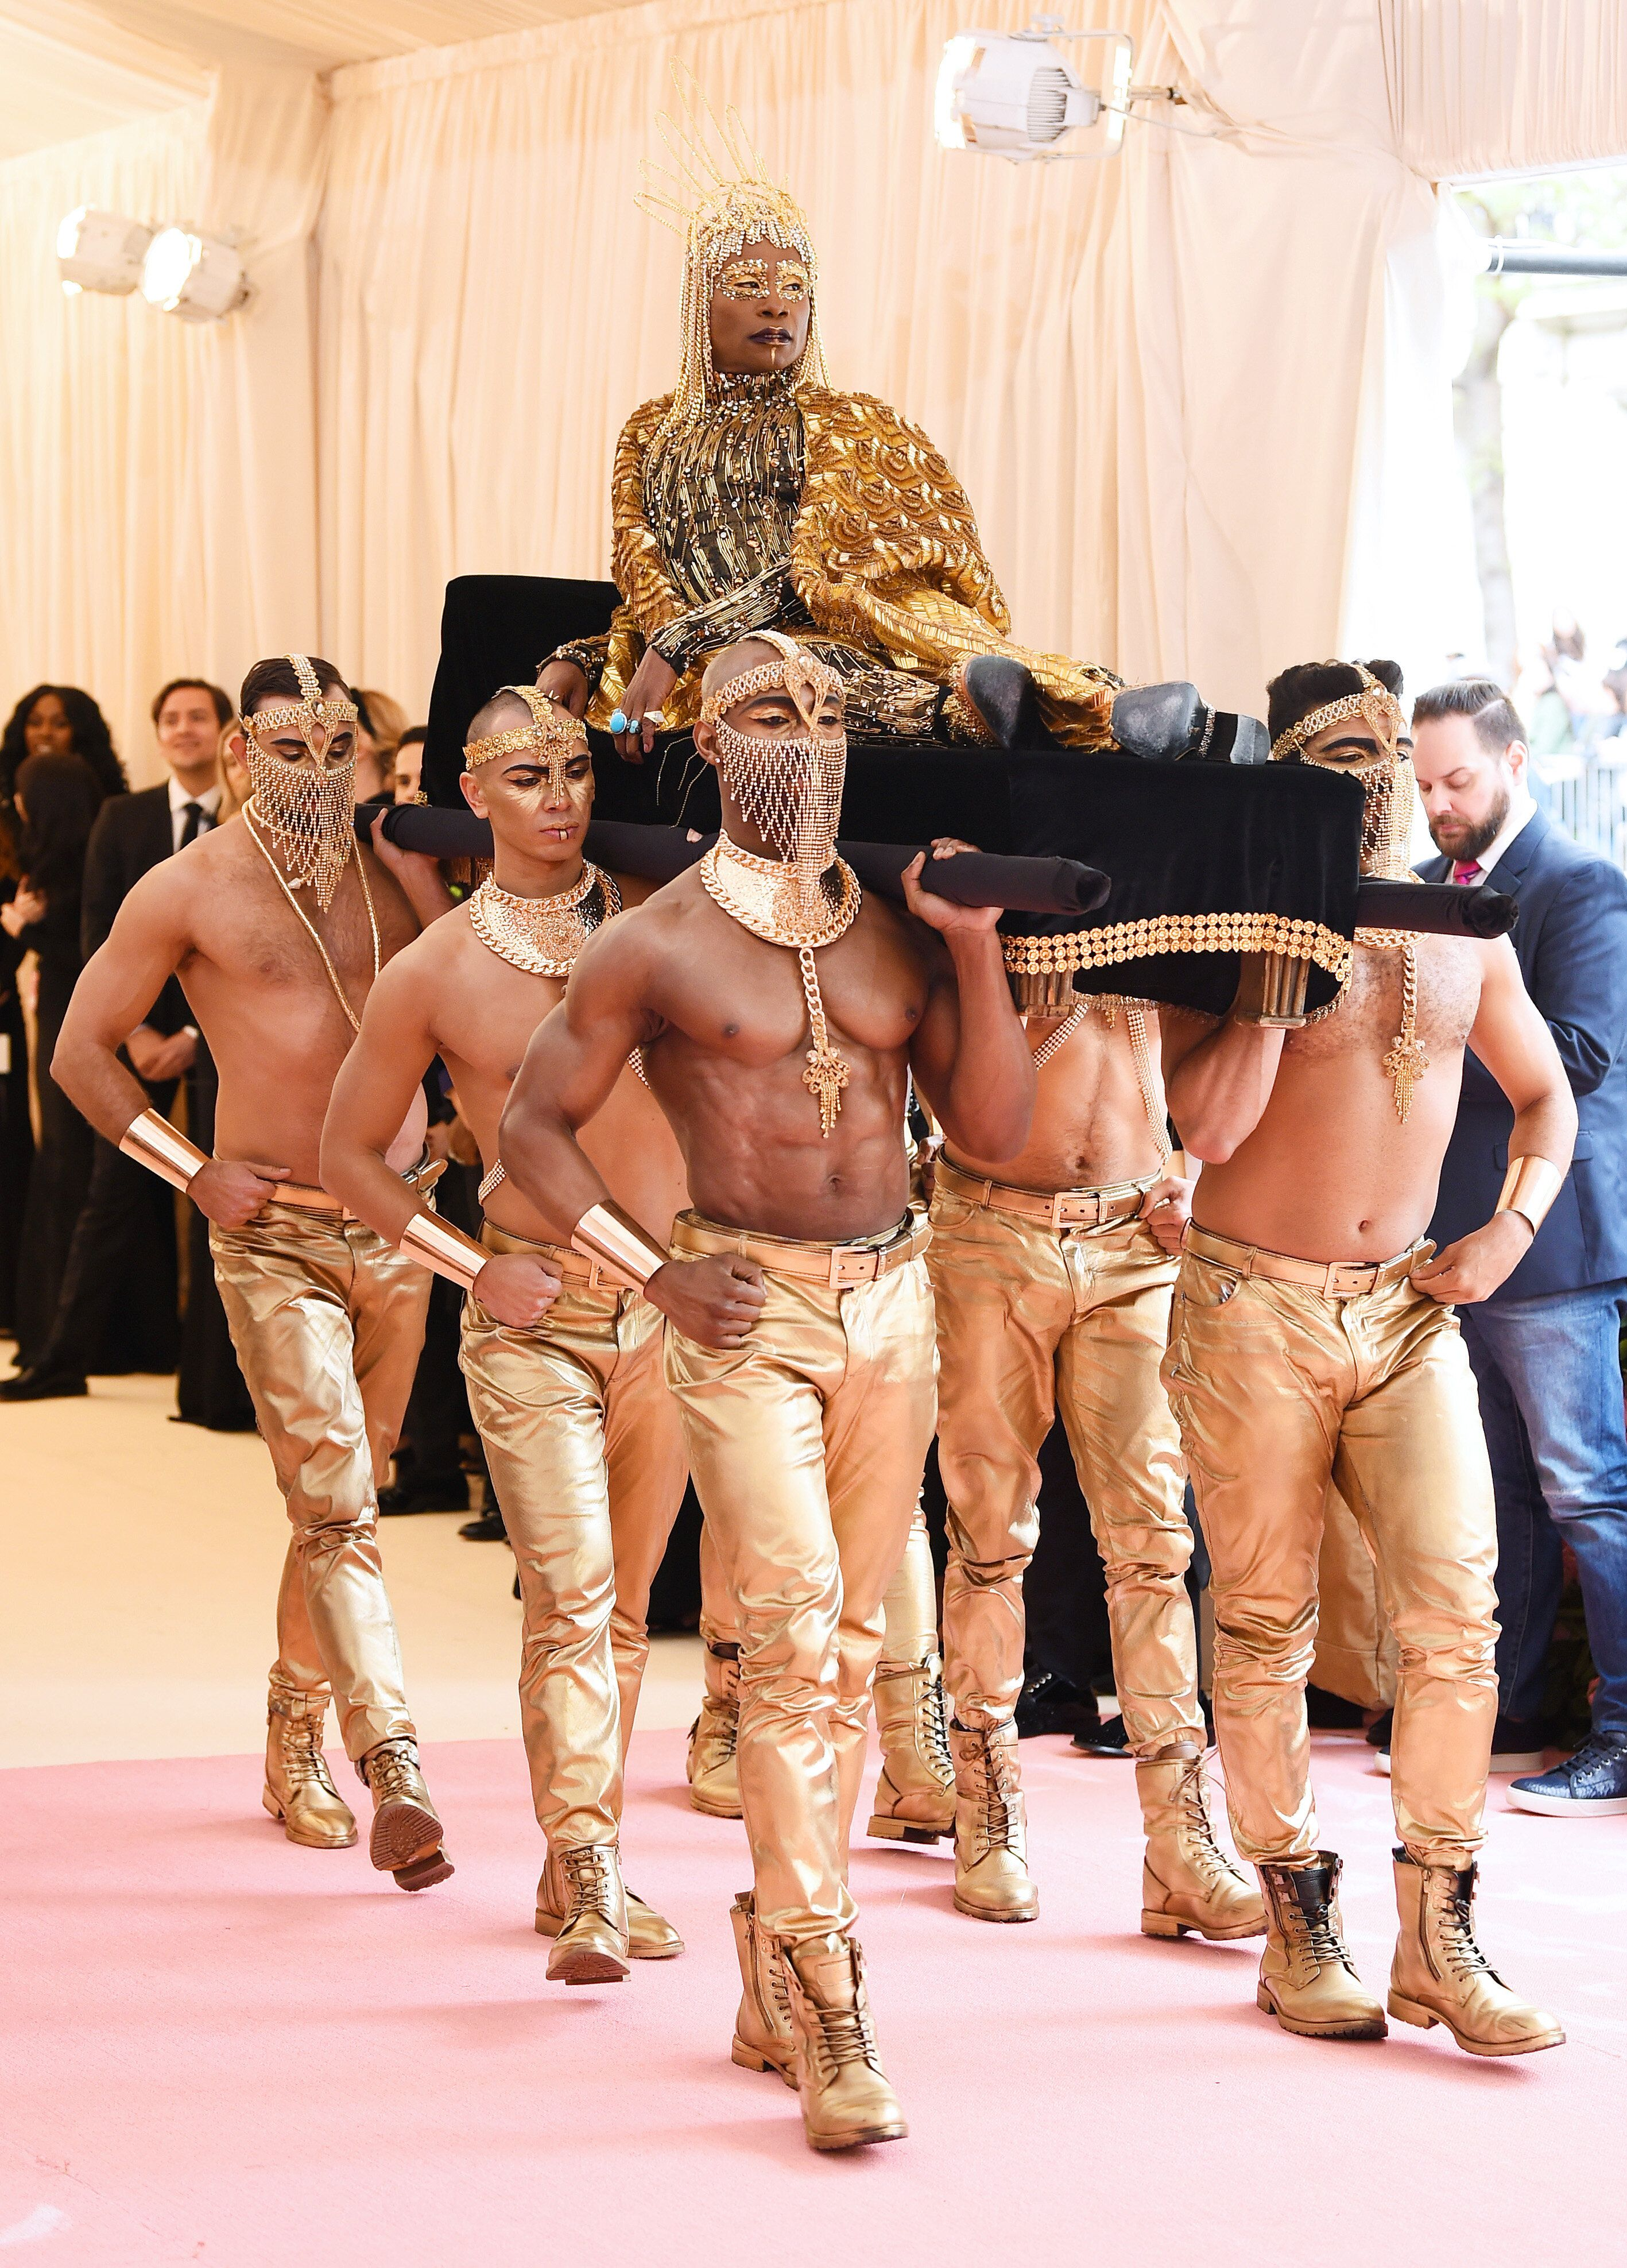 NEW YORK, NEW YORK - MAY 06:  Billy Porter attends The 2019 Met Gala Celebrating Camp: Notes on Fashion at Metropolitan Museum of Art on May 06, 2019 in New York City. (Photo by Dimitrios Kambouris/Getty Images for The Met Museum/Vogue)